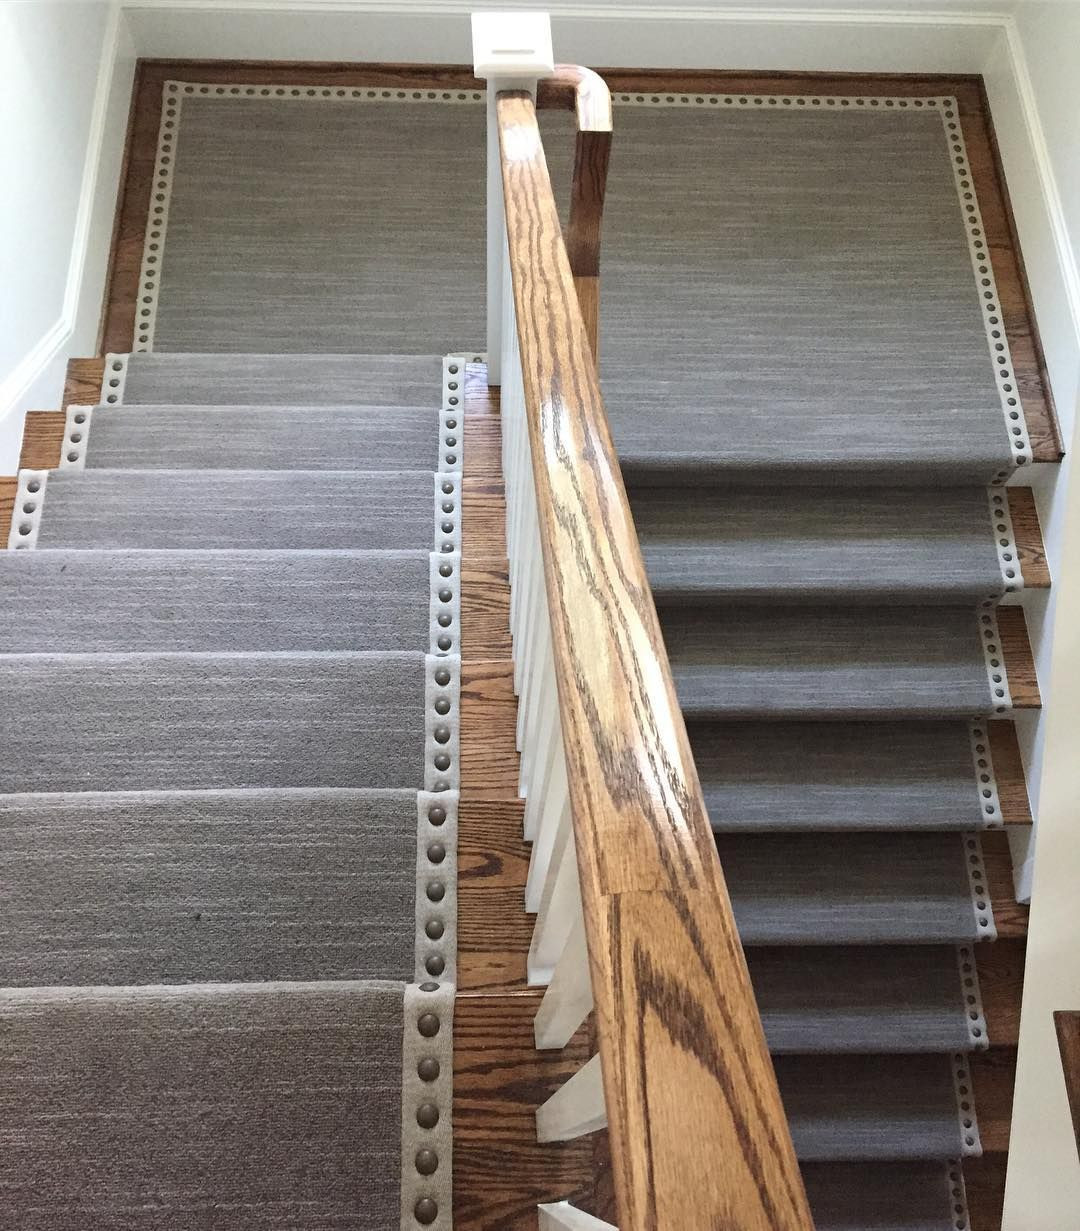 bullnose hardwood floor edging of mnailheads add an elegance to this stair runner and edge regram via within mnailheads add an elegance to this stair runner and edge regram via jabelinteriors werandy